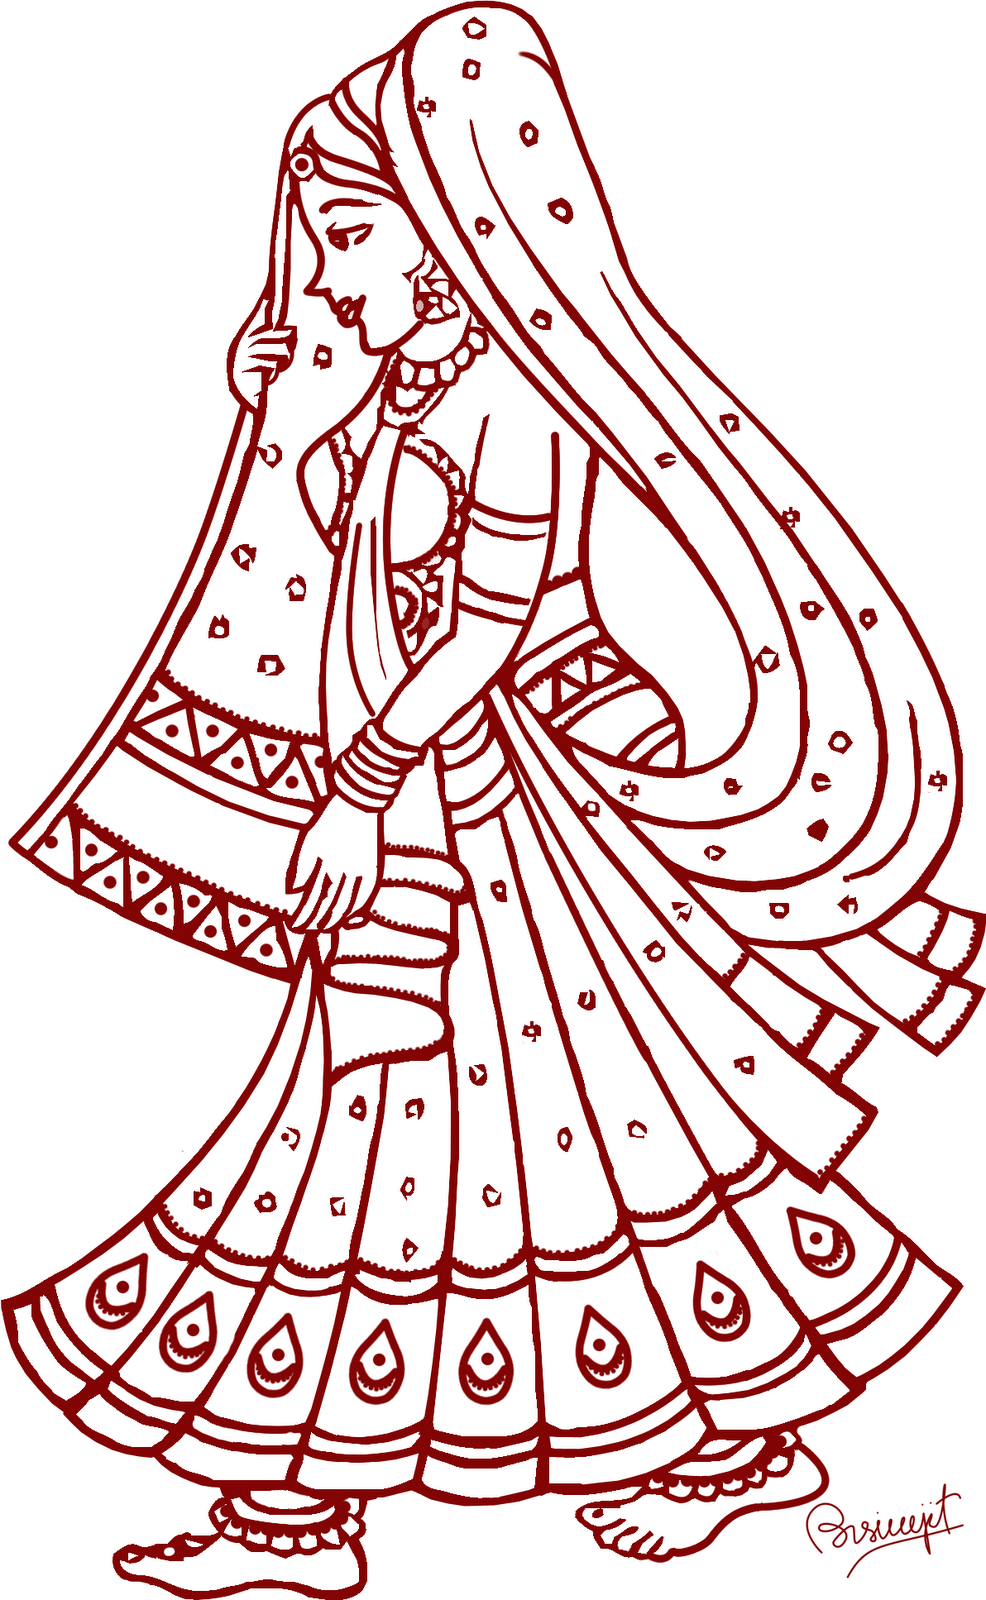 Indian clipart marriage ceremony Couple 101 Couple Wedding Indian